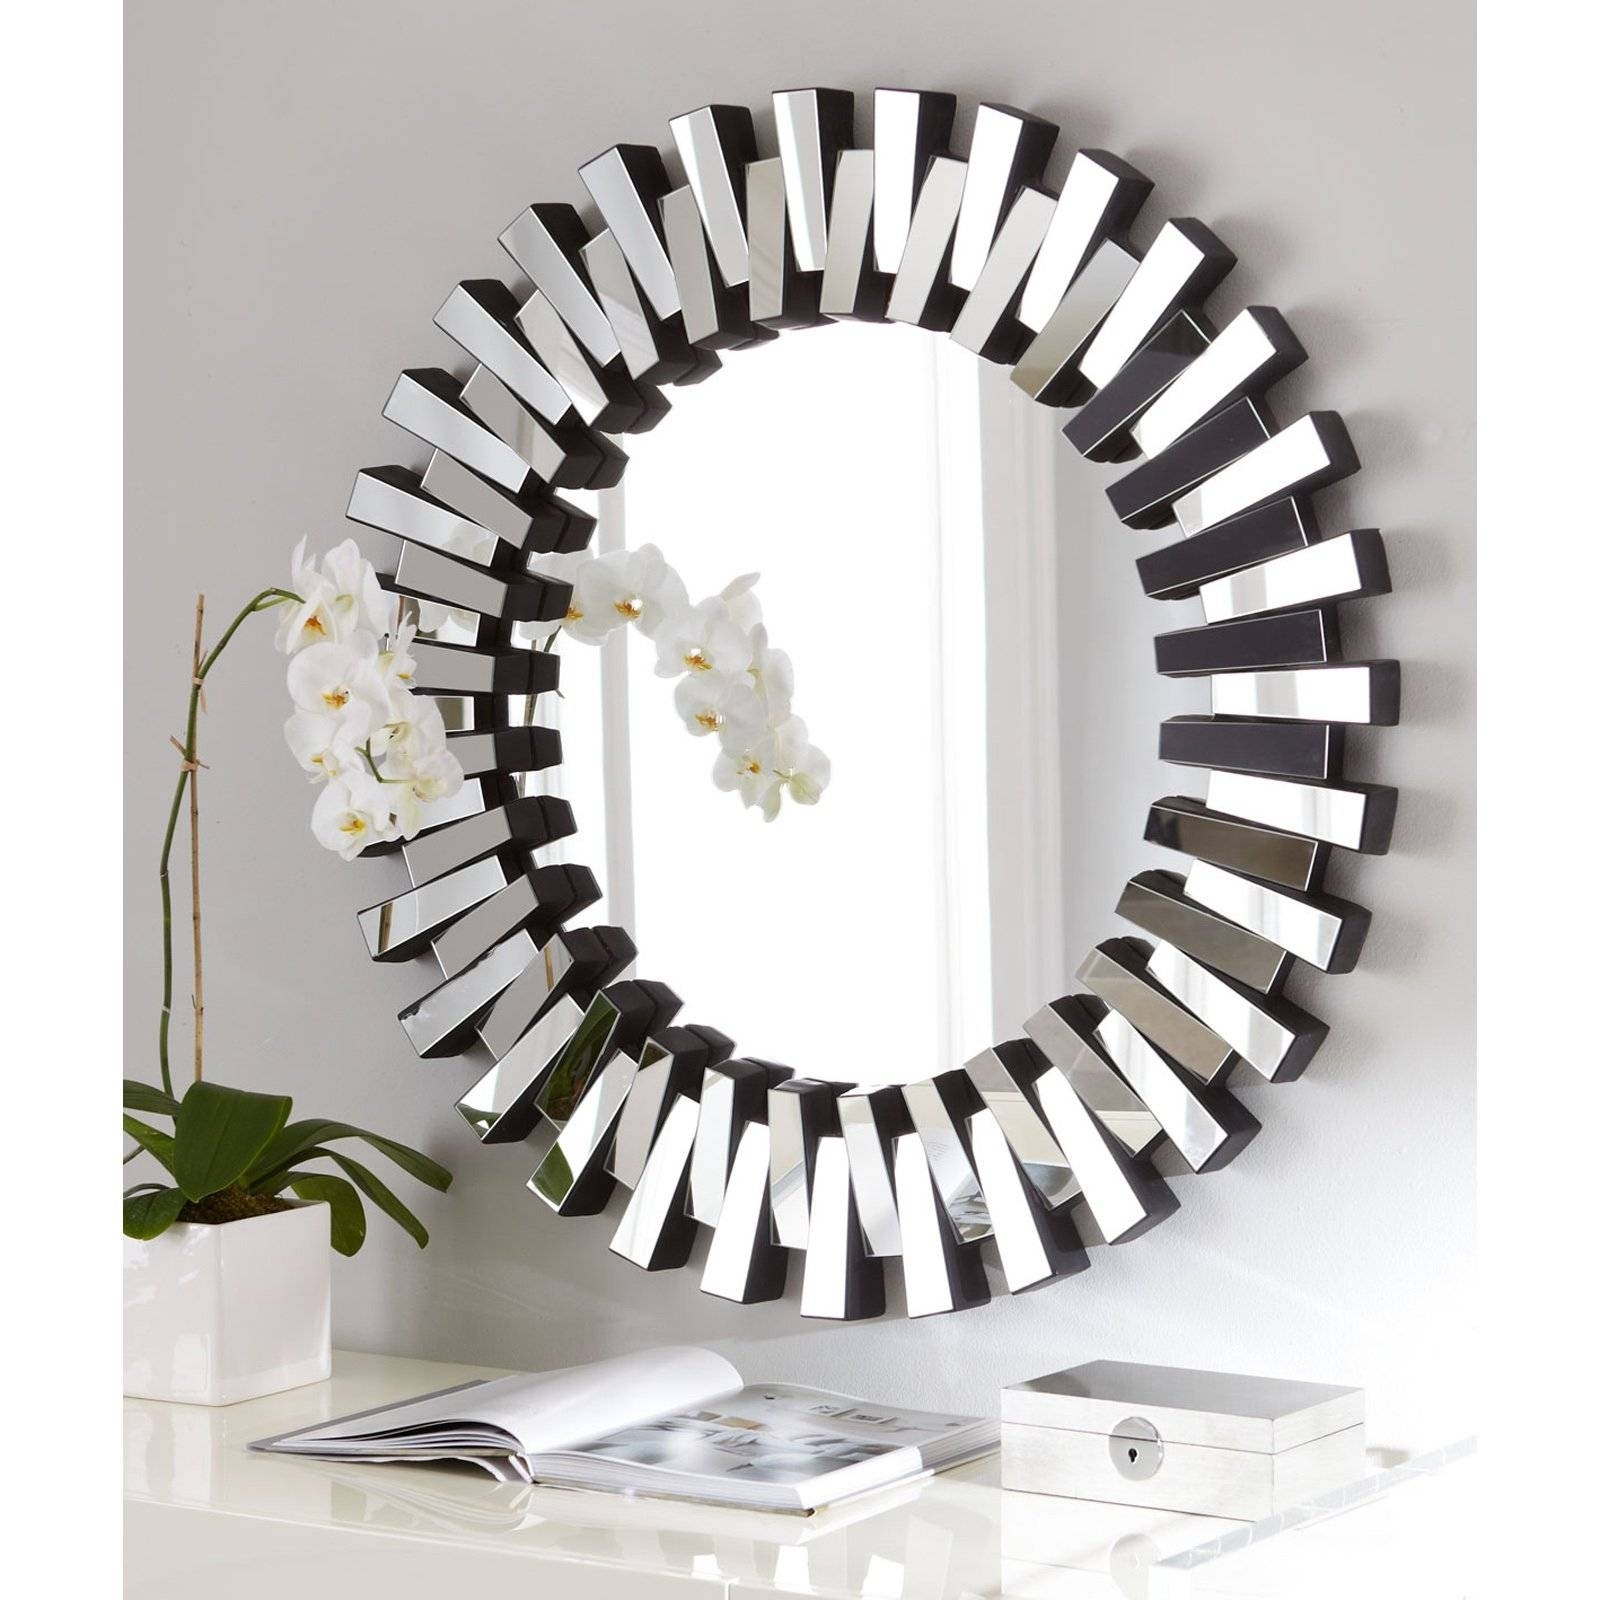 Afina Modern Luxe Round Wall Mirror - 36 In. | Hayneedle pertaining to Designer Round Mirrors (Image 5 of 25)